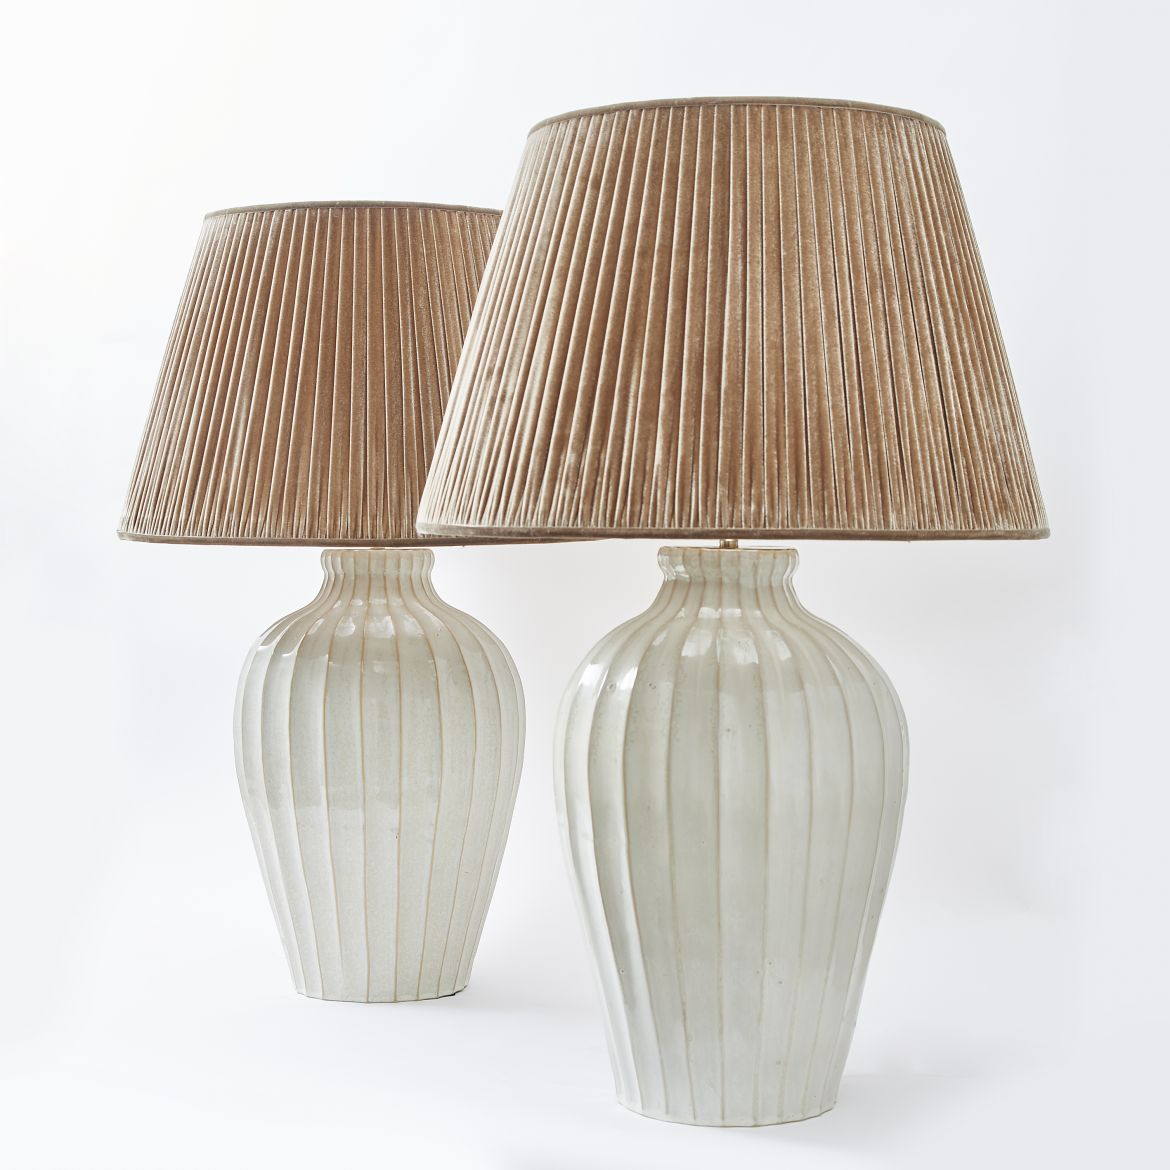 Pair Japanese Ribbed Lamps